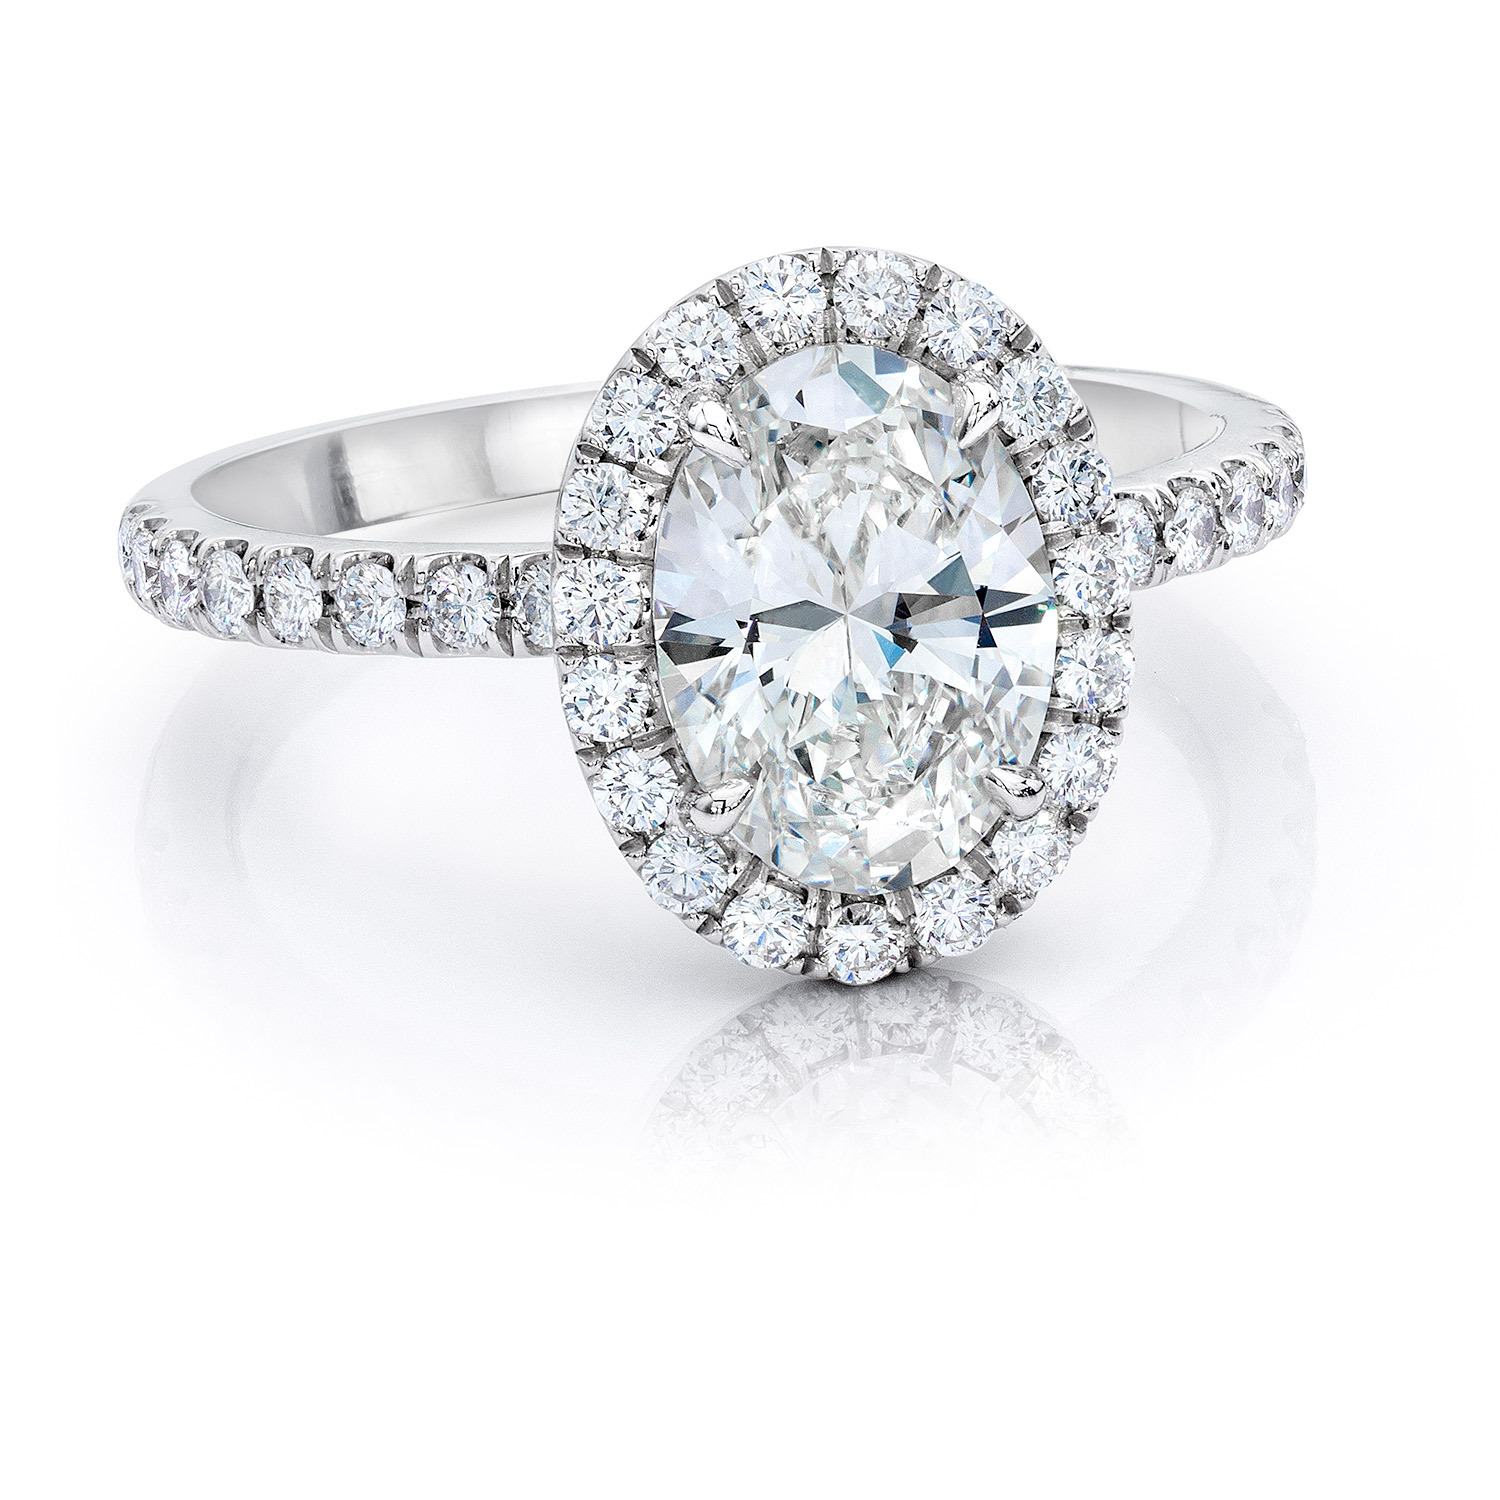 Oval Cut Diamond In Halo Solitaire Ring In Platinum